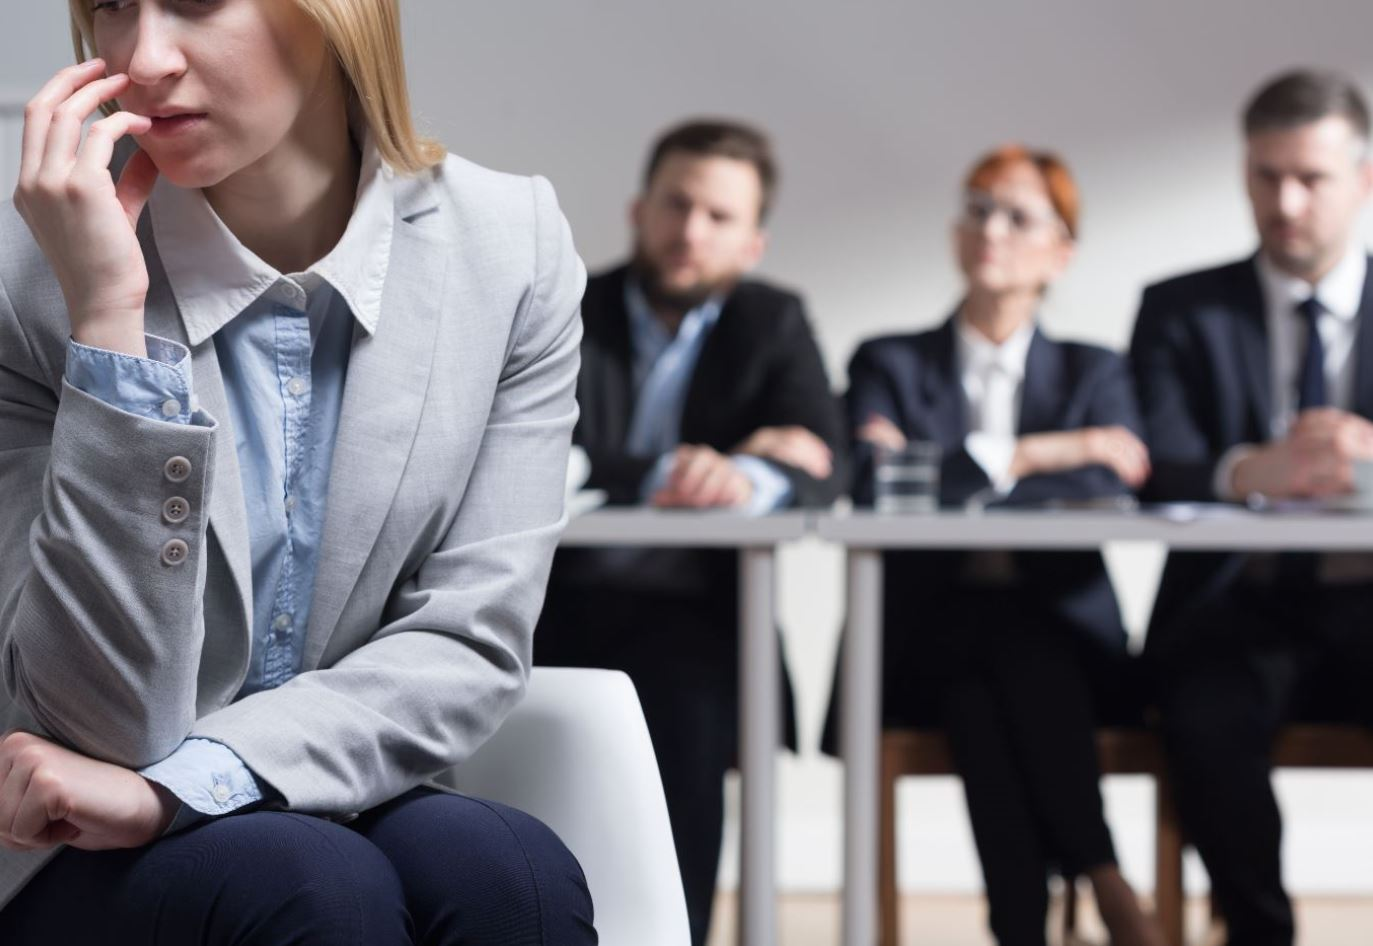 Can Introverts Be Leaders?